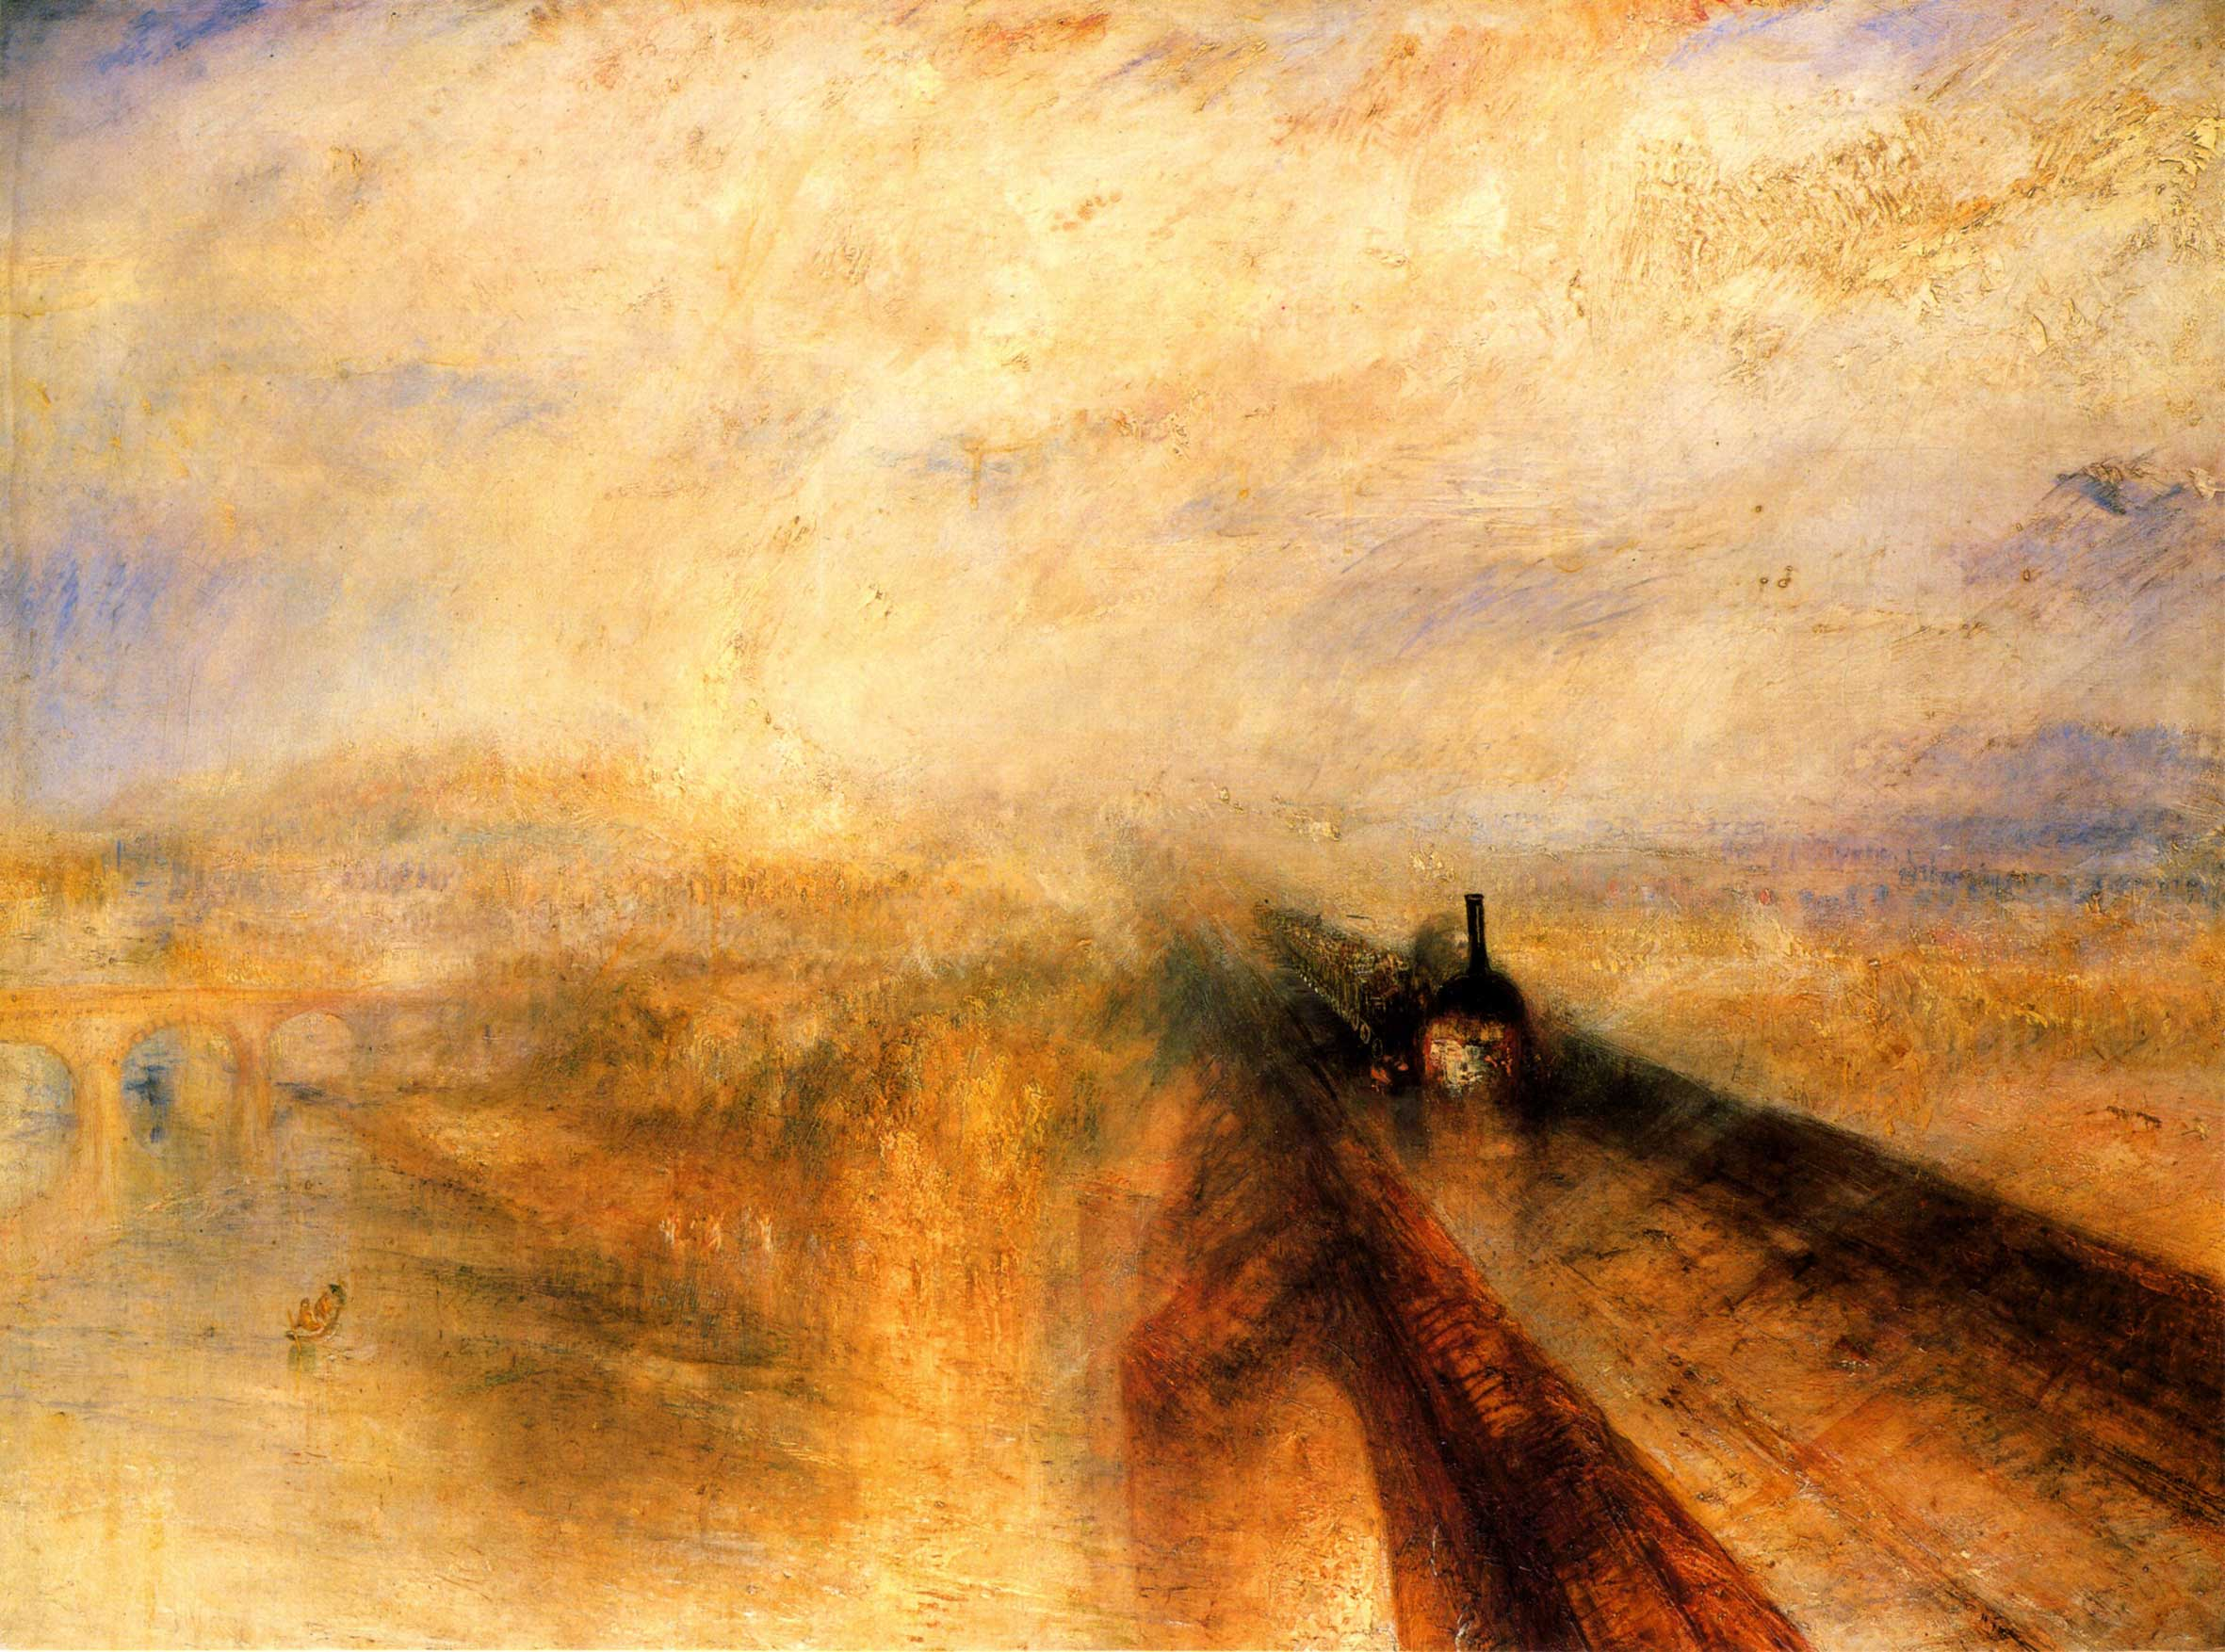 J. M. W. Turner, Rain, Steam and Speed – The Great Western Railway (1844, oil on canvas.) London, National Gallery.